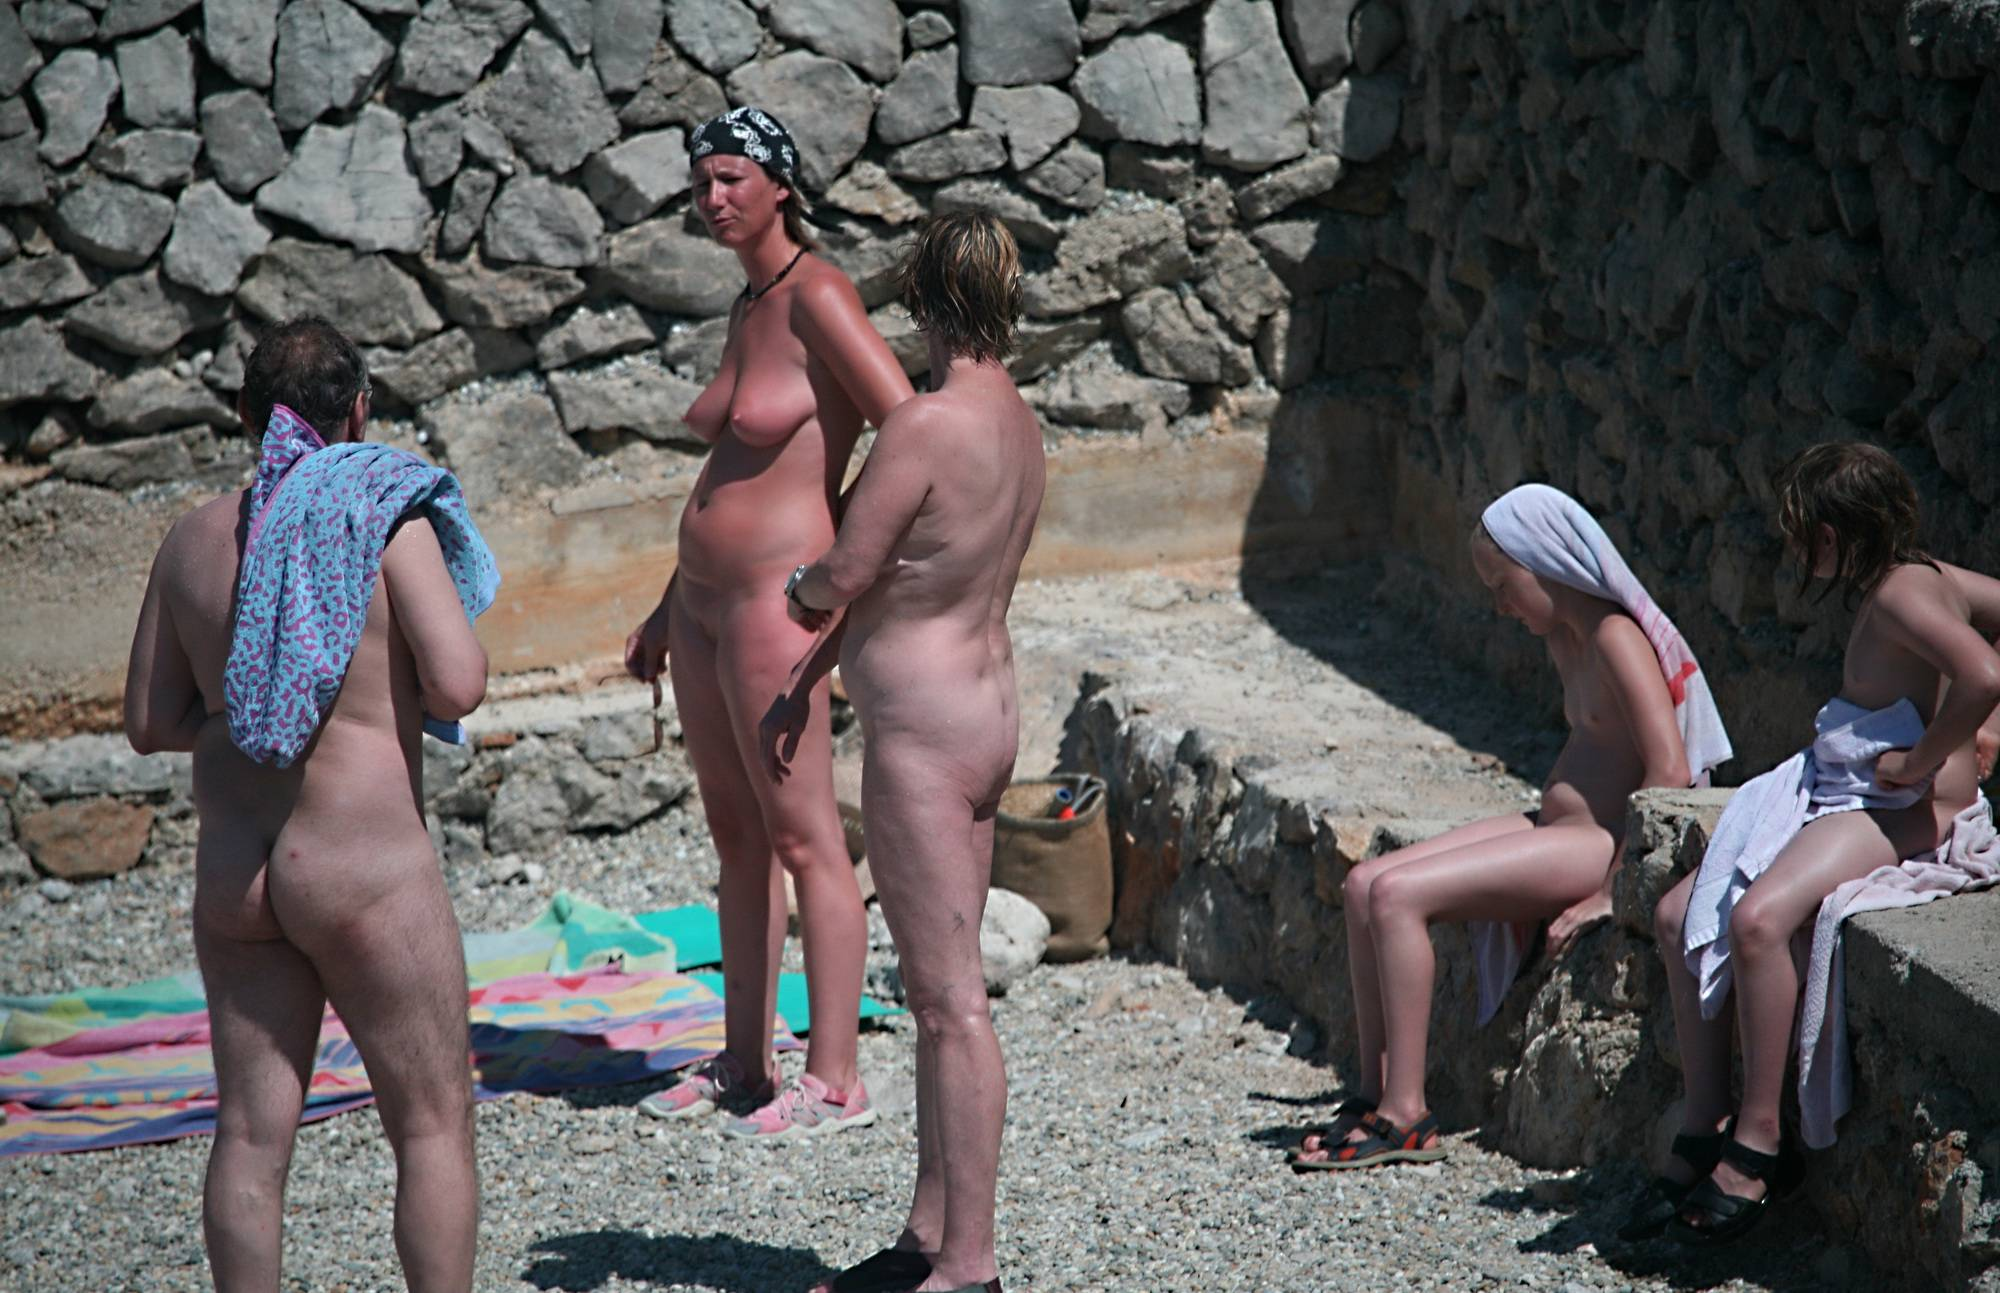 Nudist Pics Family Talking By The Wall - 2